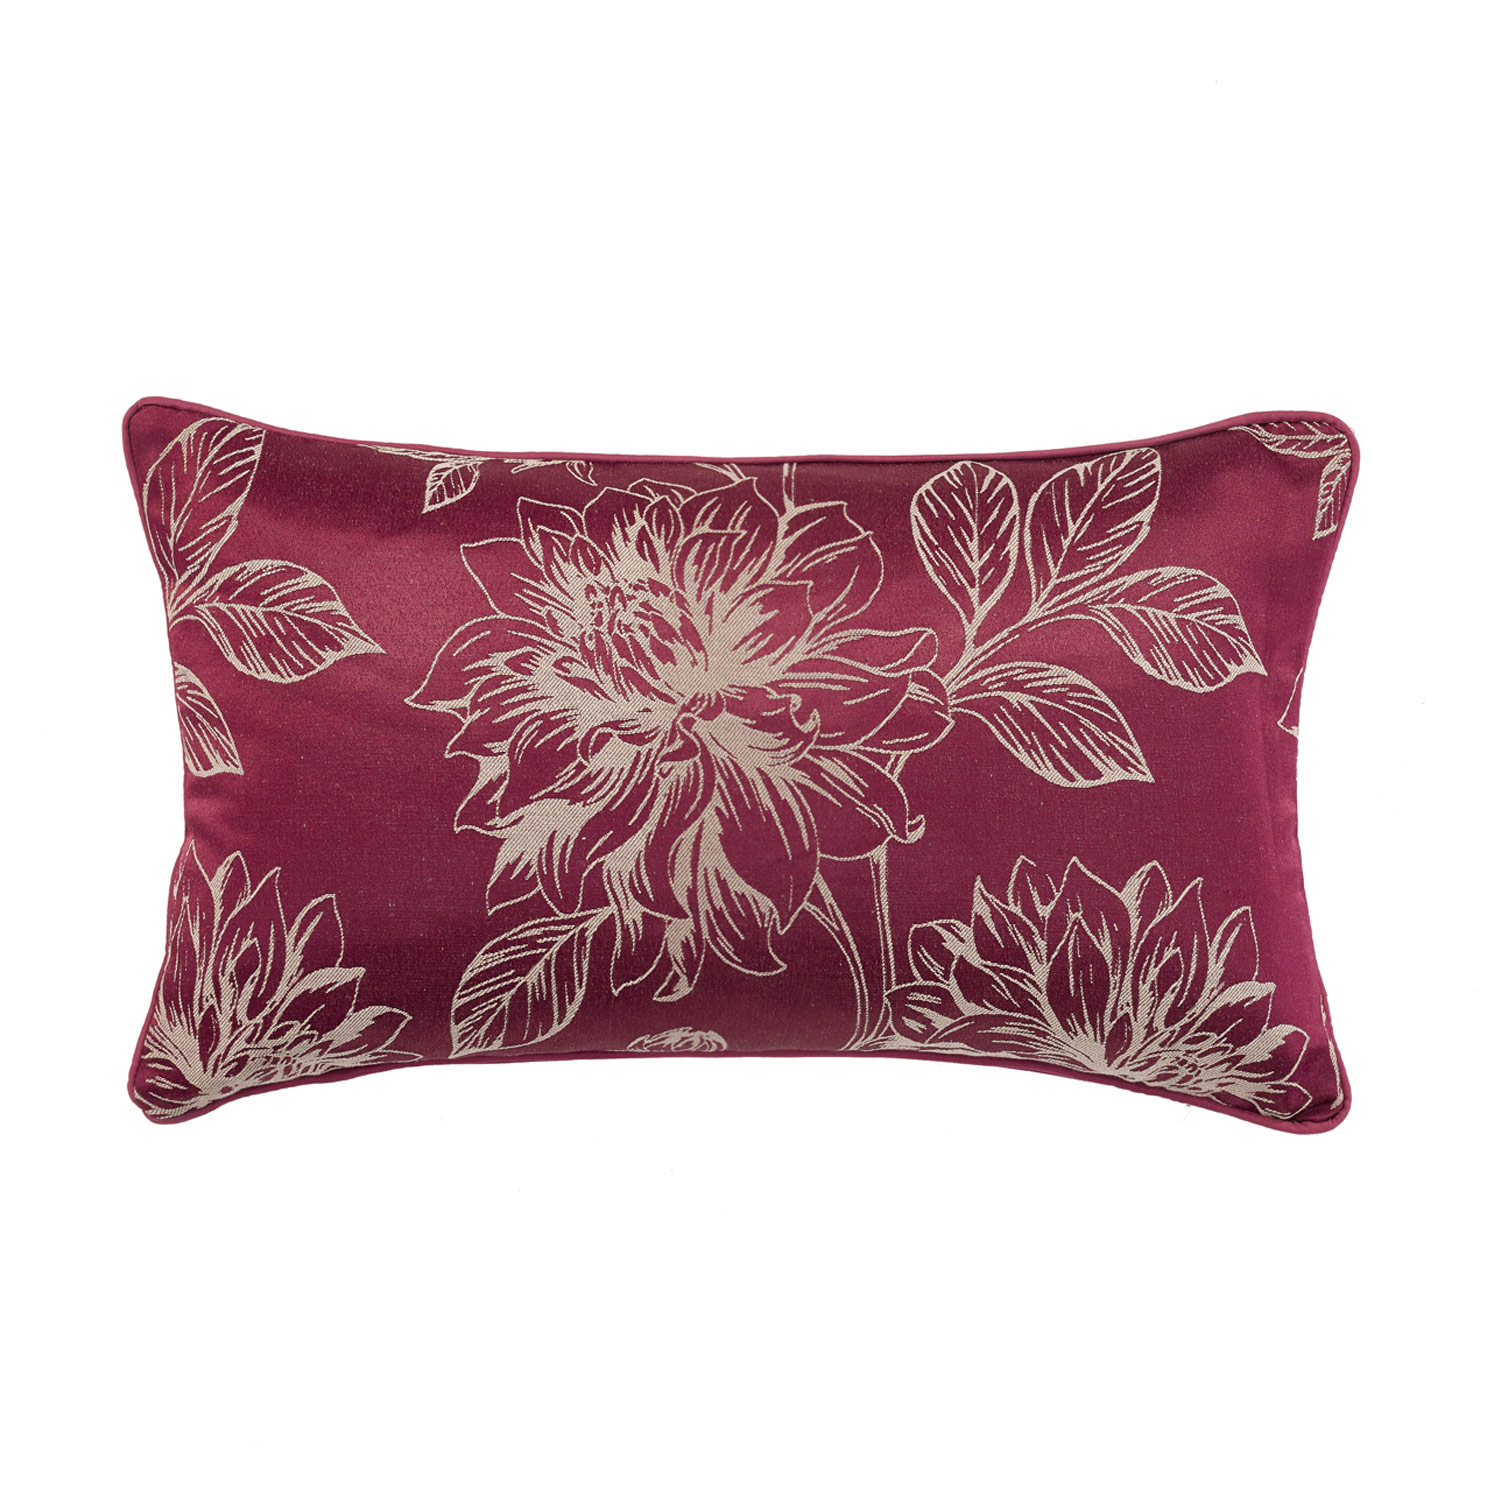 Annabelle Raspberry Filled Boudoir Cushion